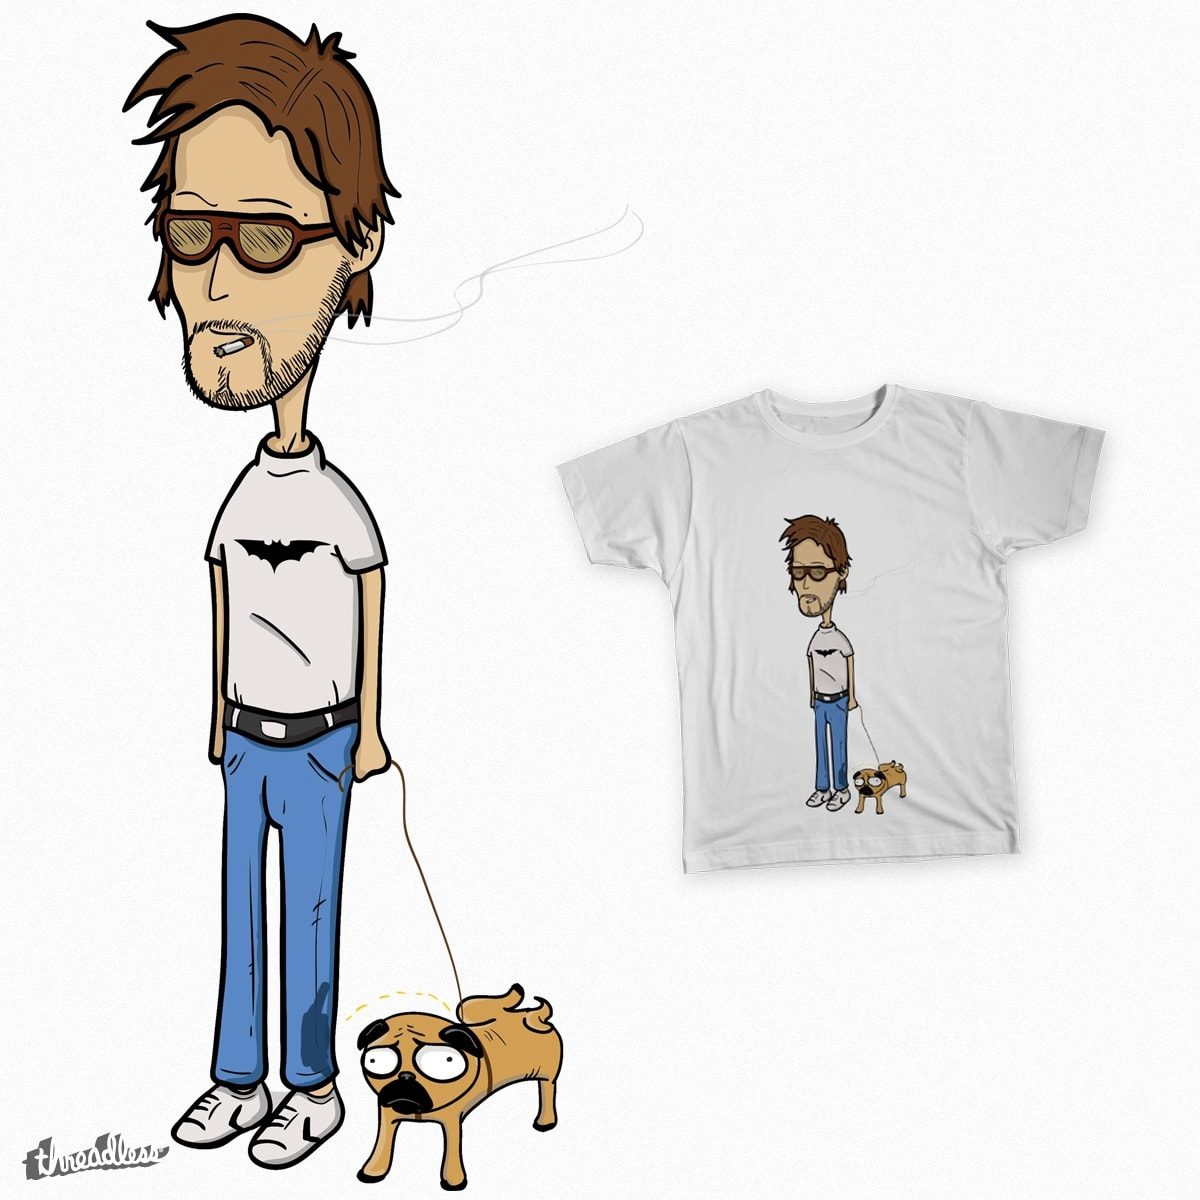 in PUG we TRUST by gianco on Threadless